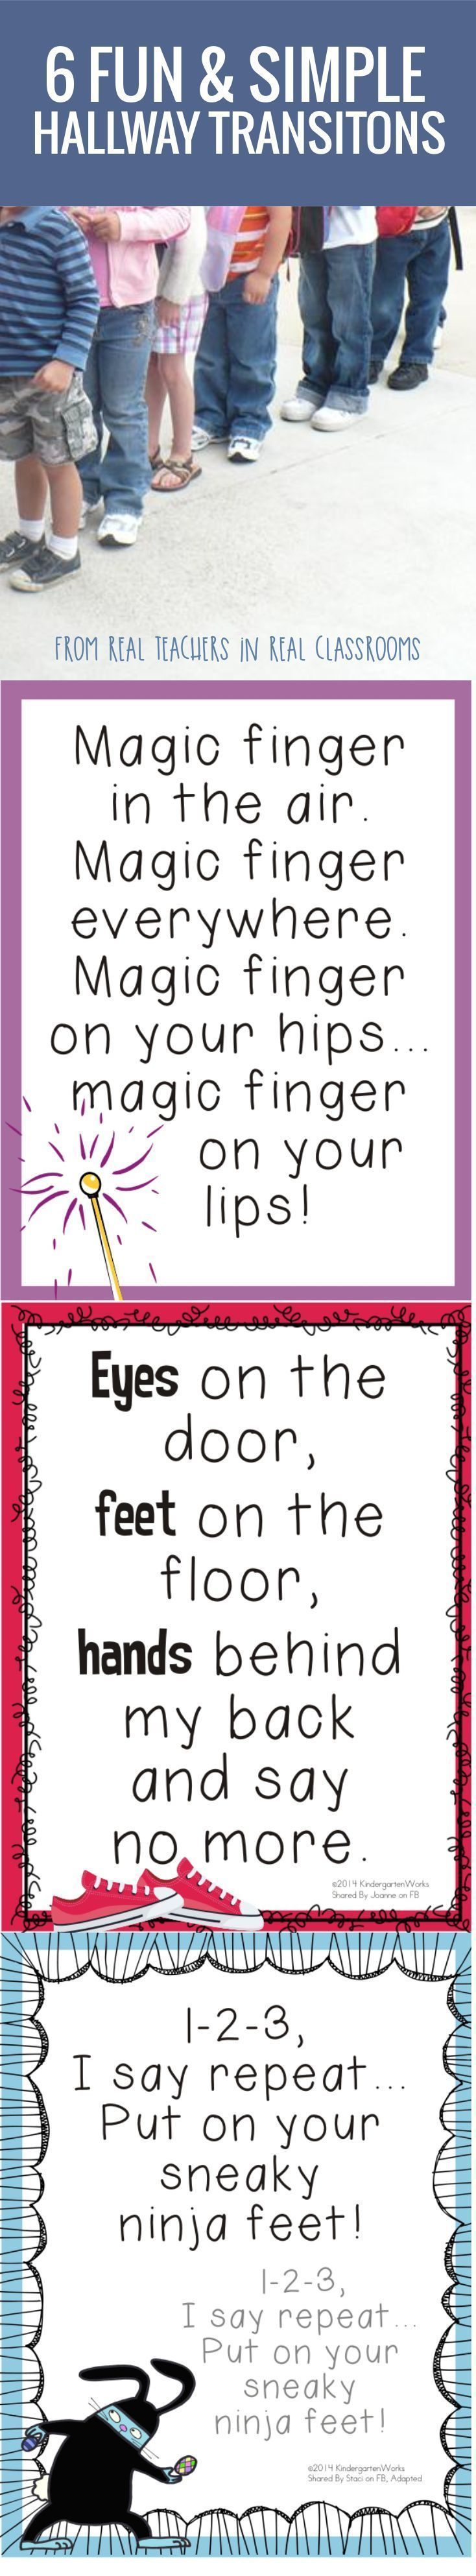 6 Fun and Simple Hallways Transitions for Kindergarten - free to print. Nice!